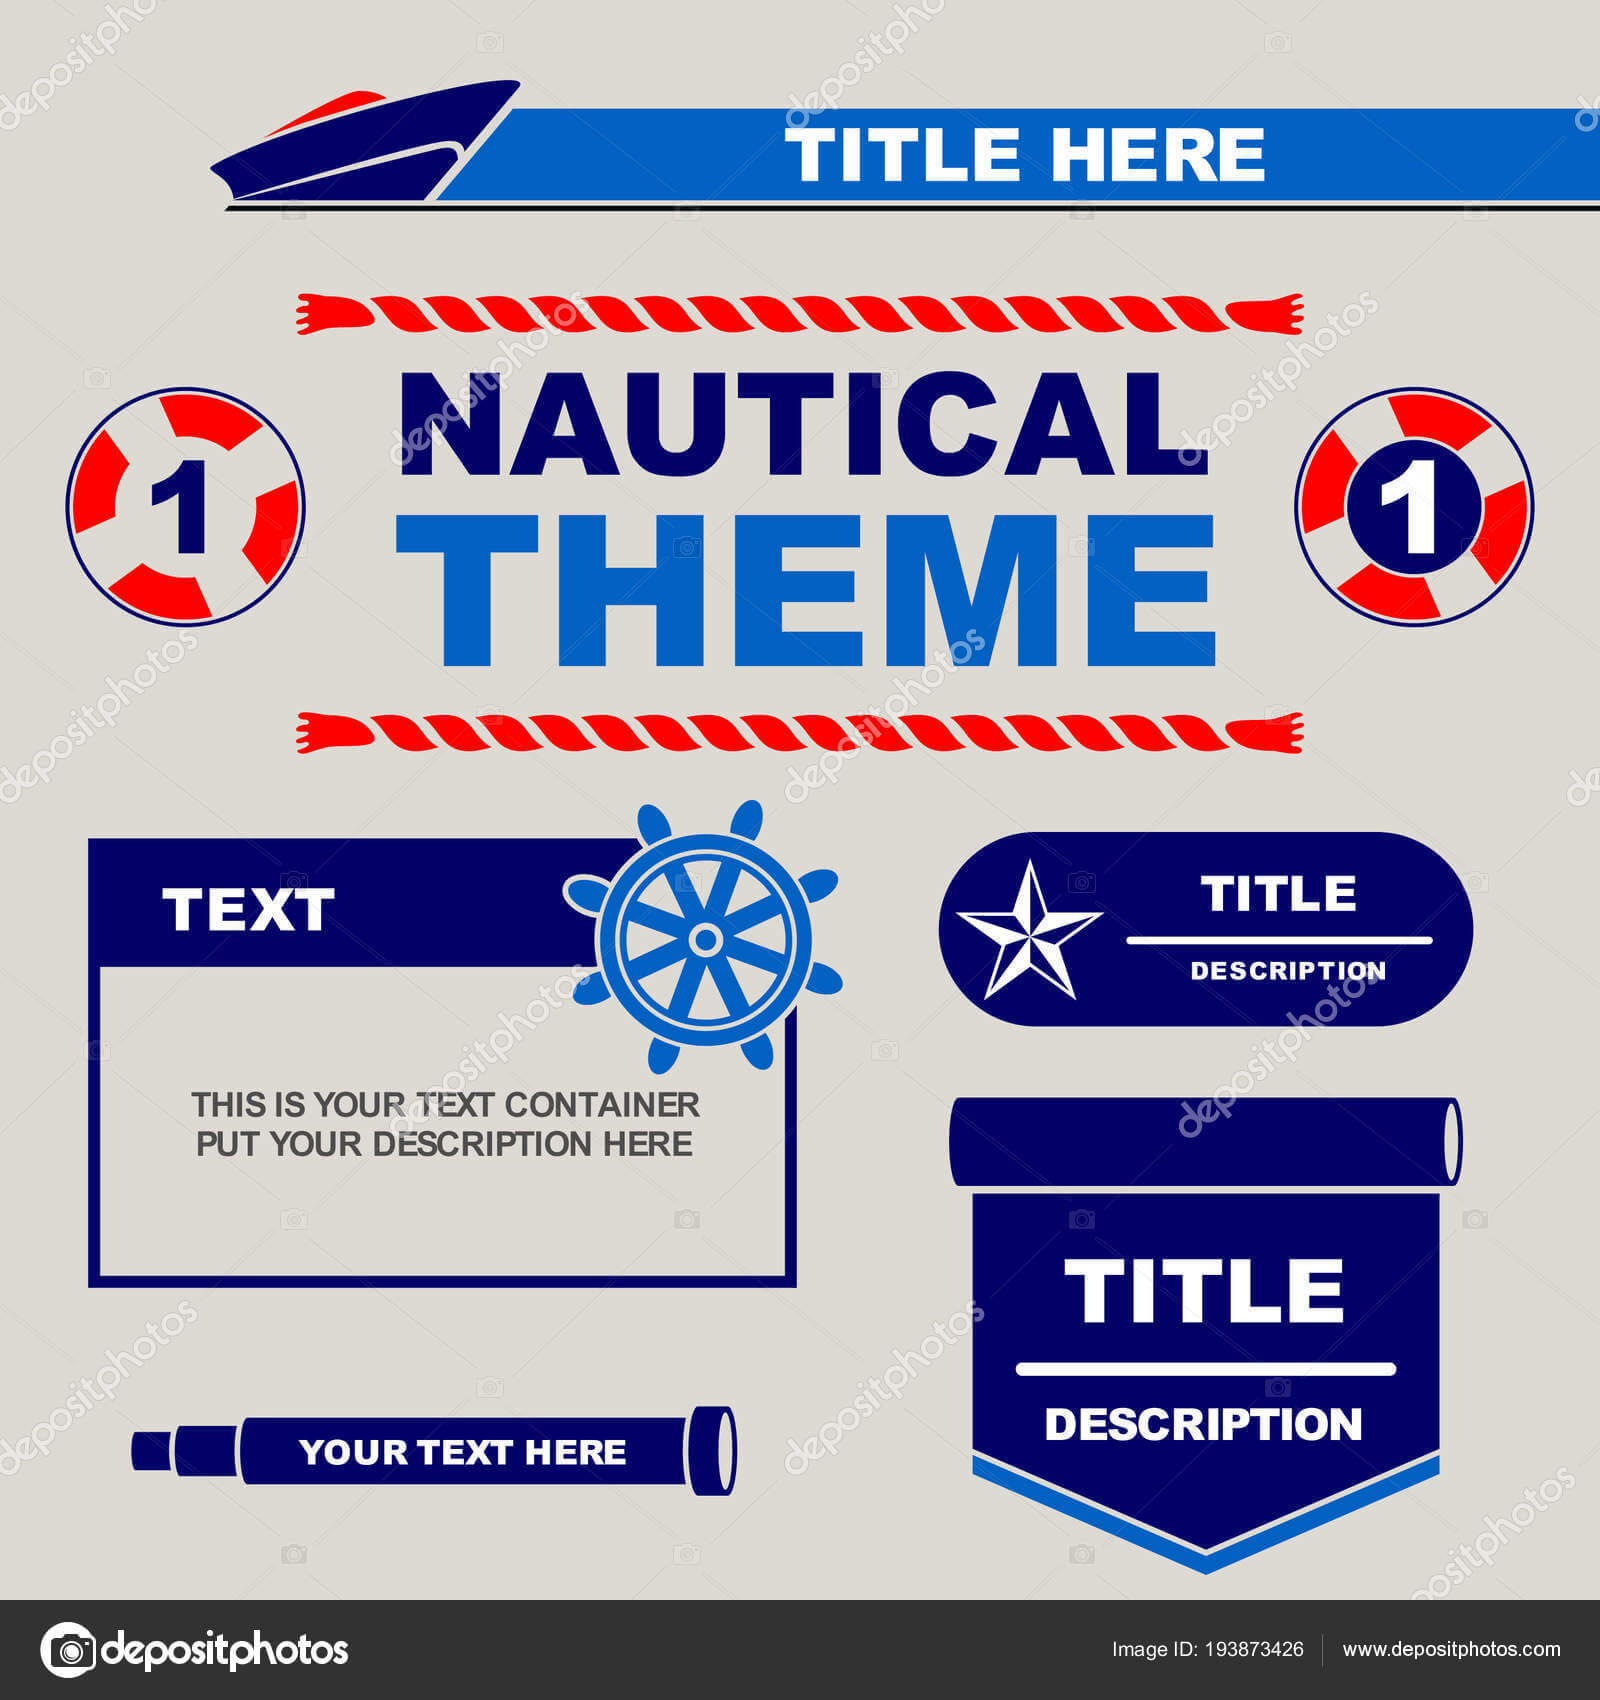 Nautical Theme Design Template You Can Use Flyers Banner Pertaining To Nautical Banner Template